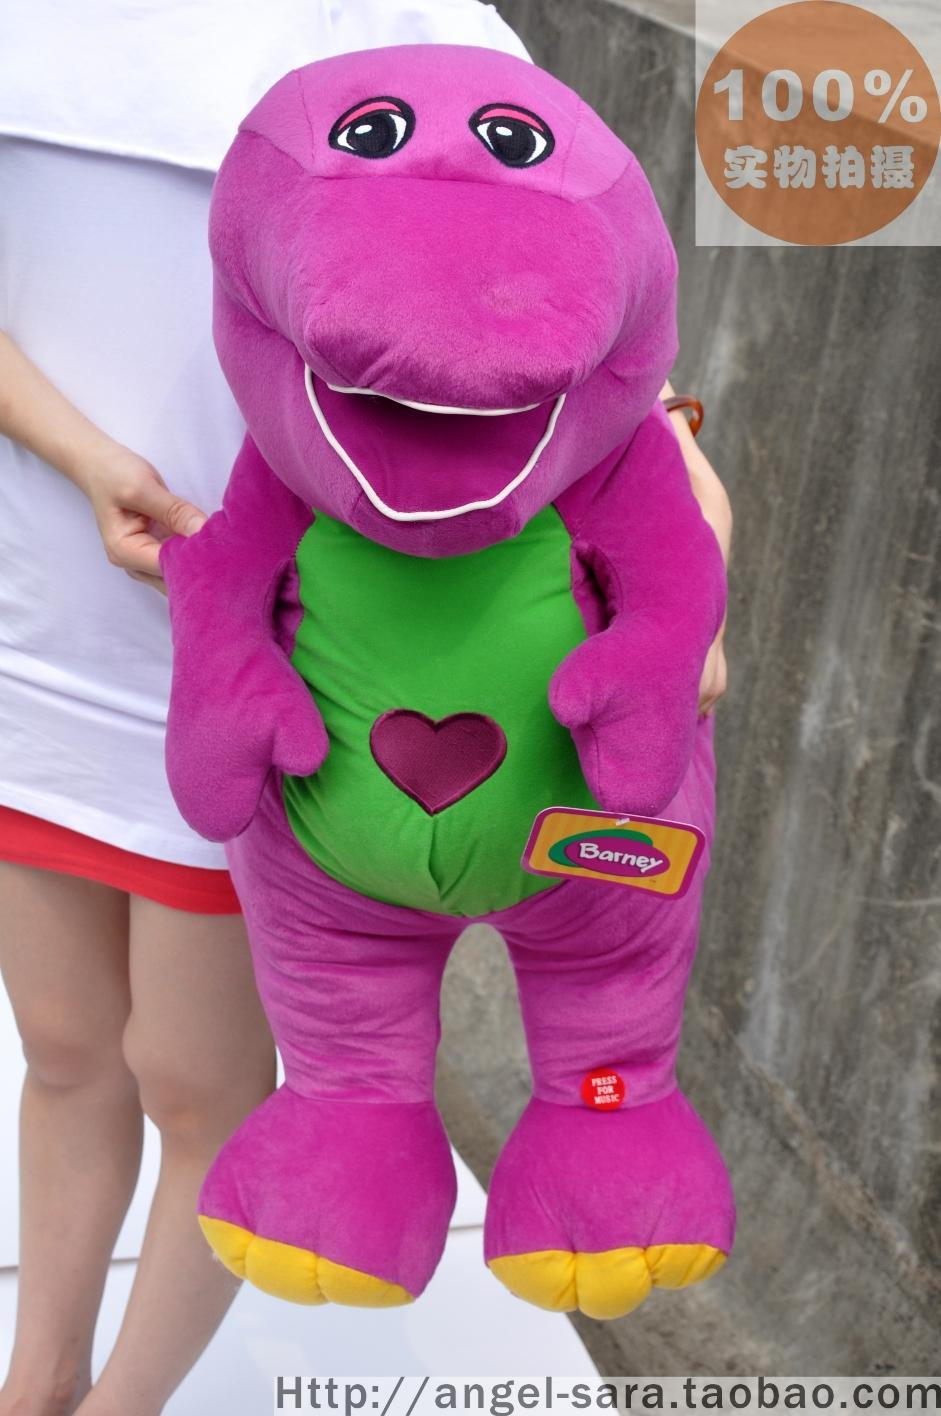 Free shipping Barney friends plush toy doll benny dolls(China (Mainland))